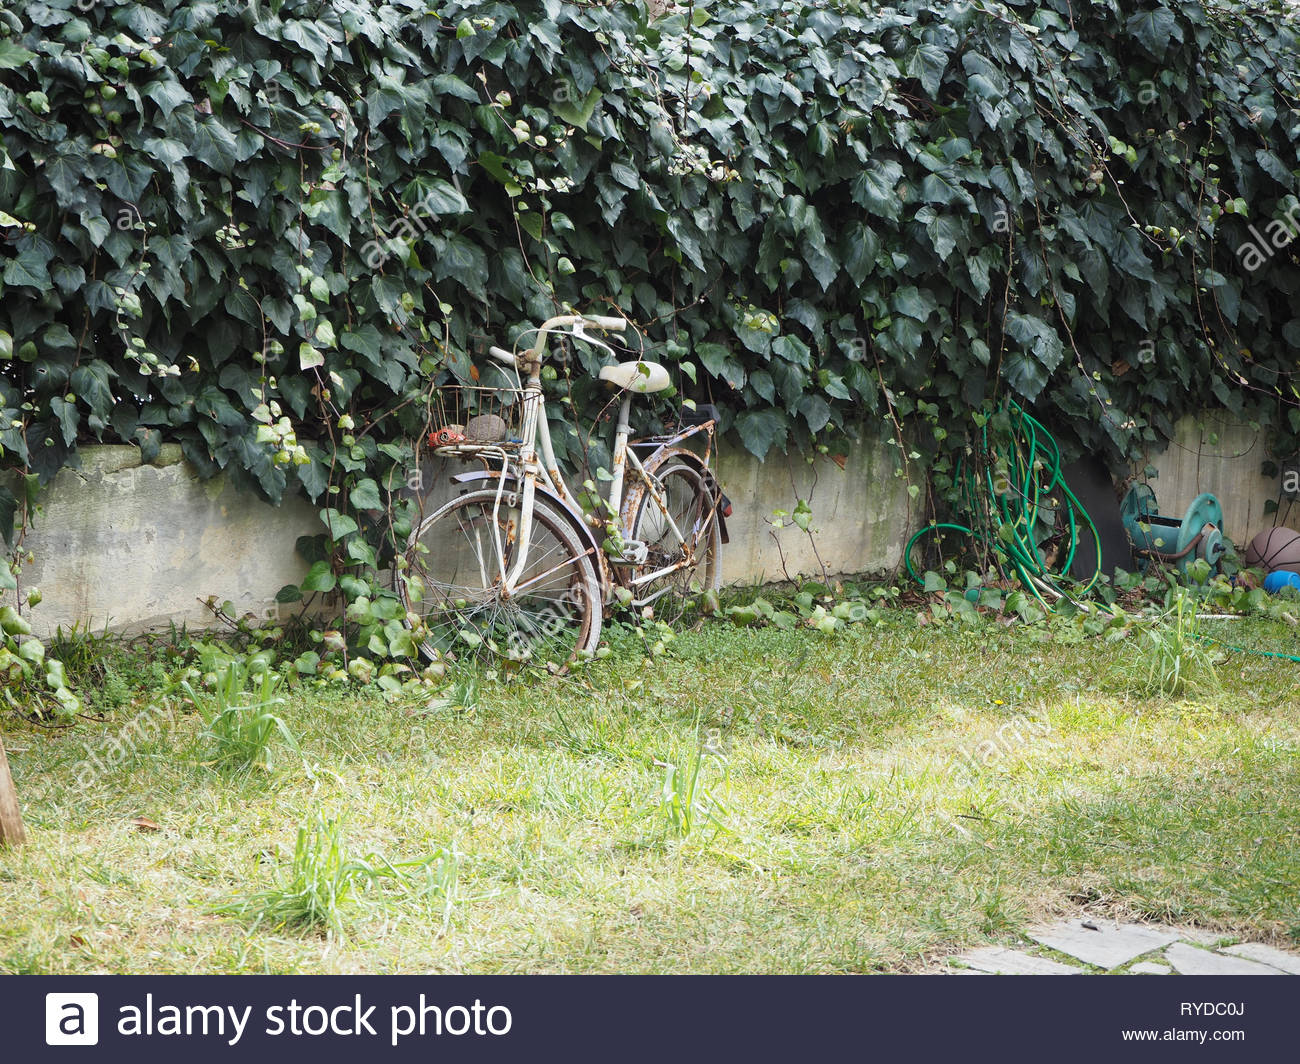 Old rusty abandoned bicycle in a backyard - Stock Image